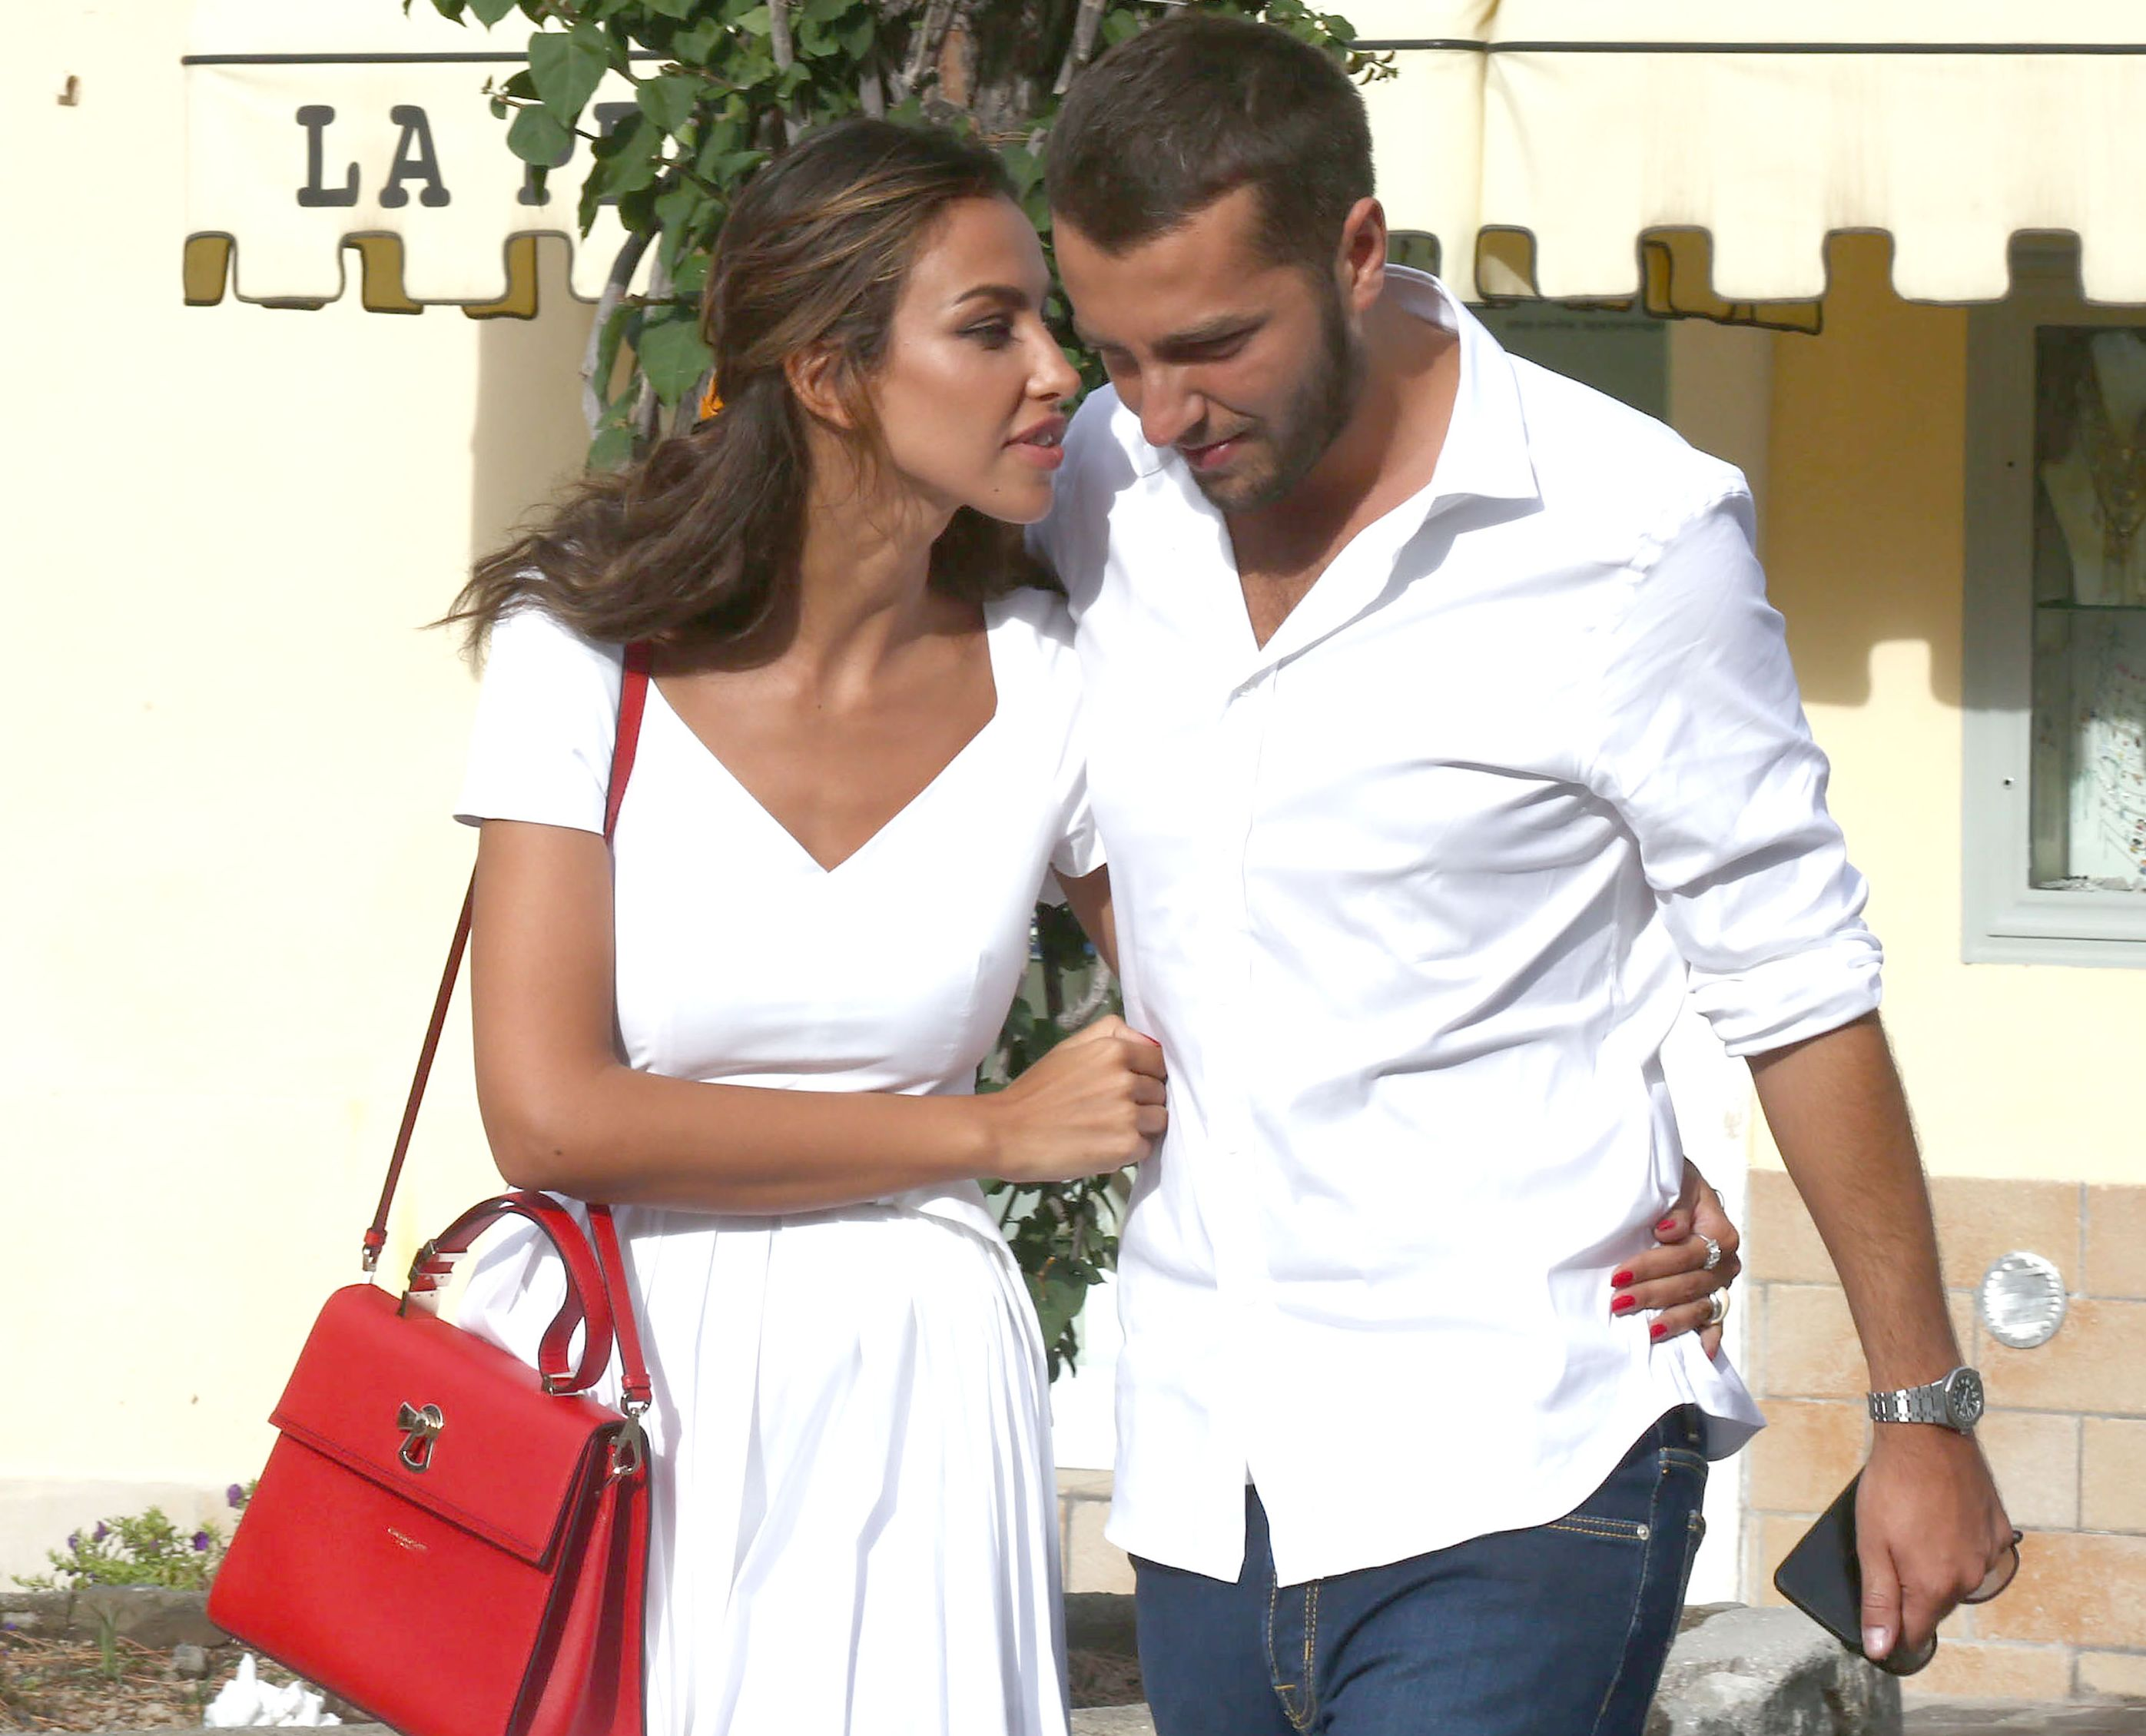 Aesthetic operations by Madalina Ghenea. Brunette, next to her new boyfriend